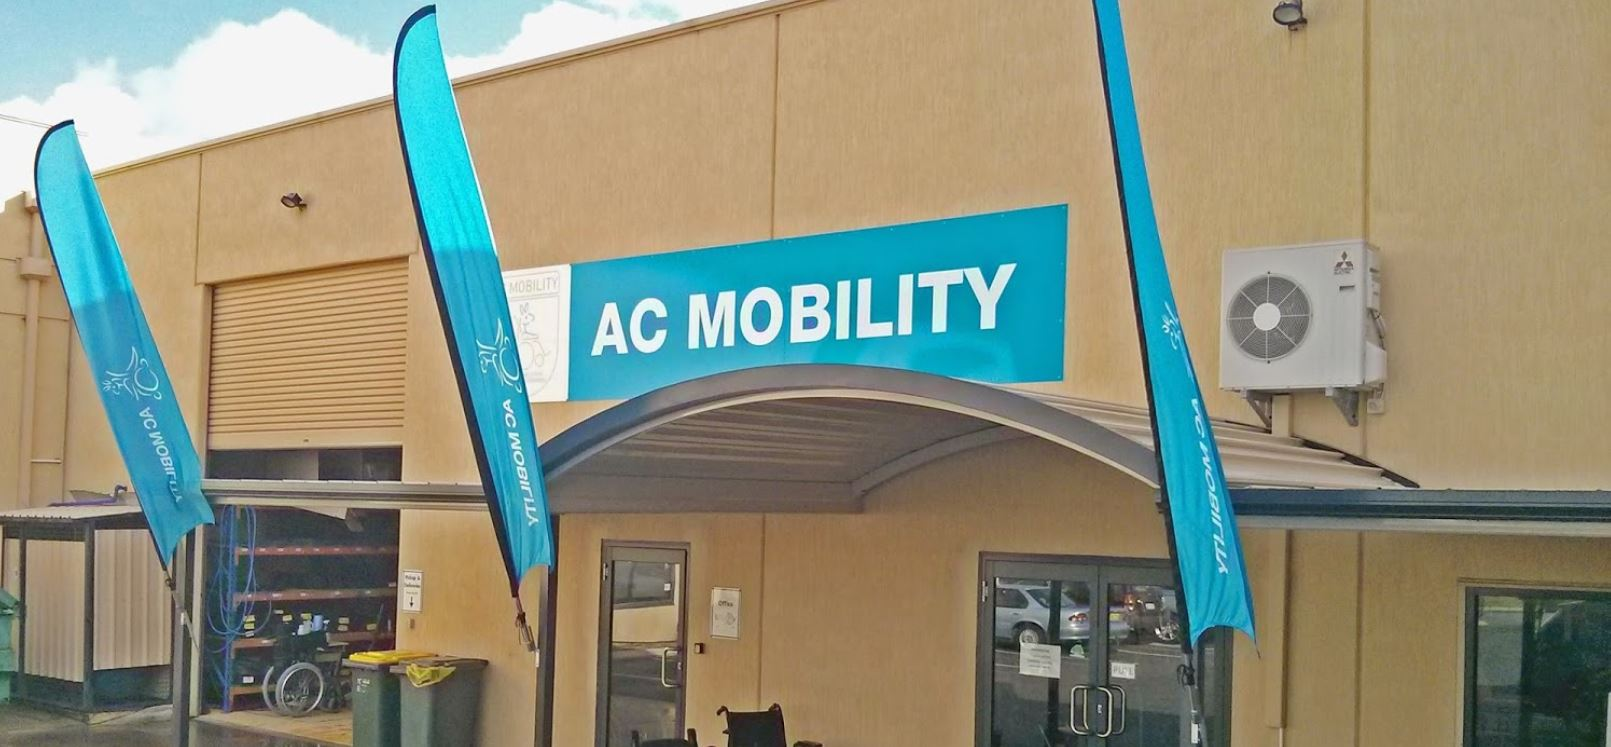 AC Mobility